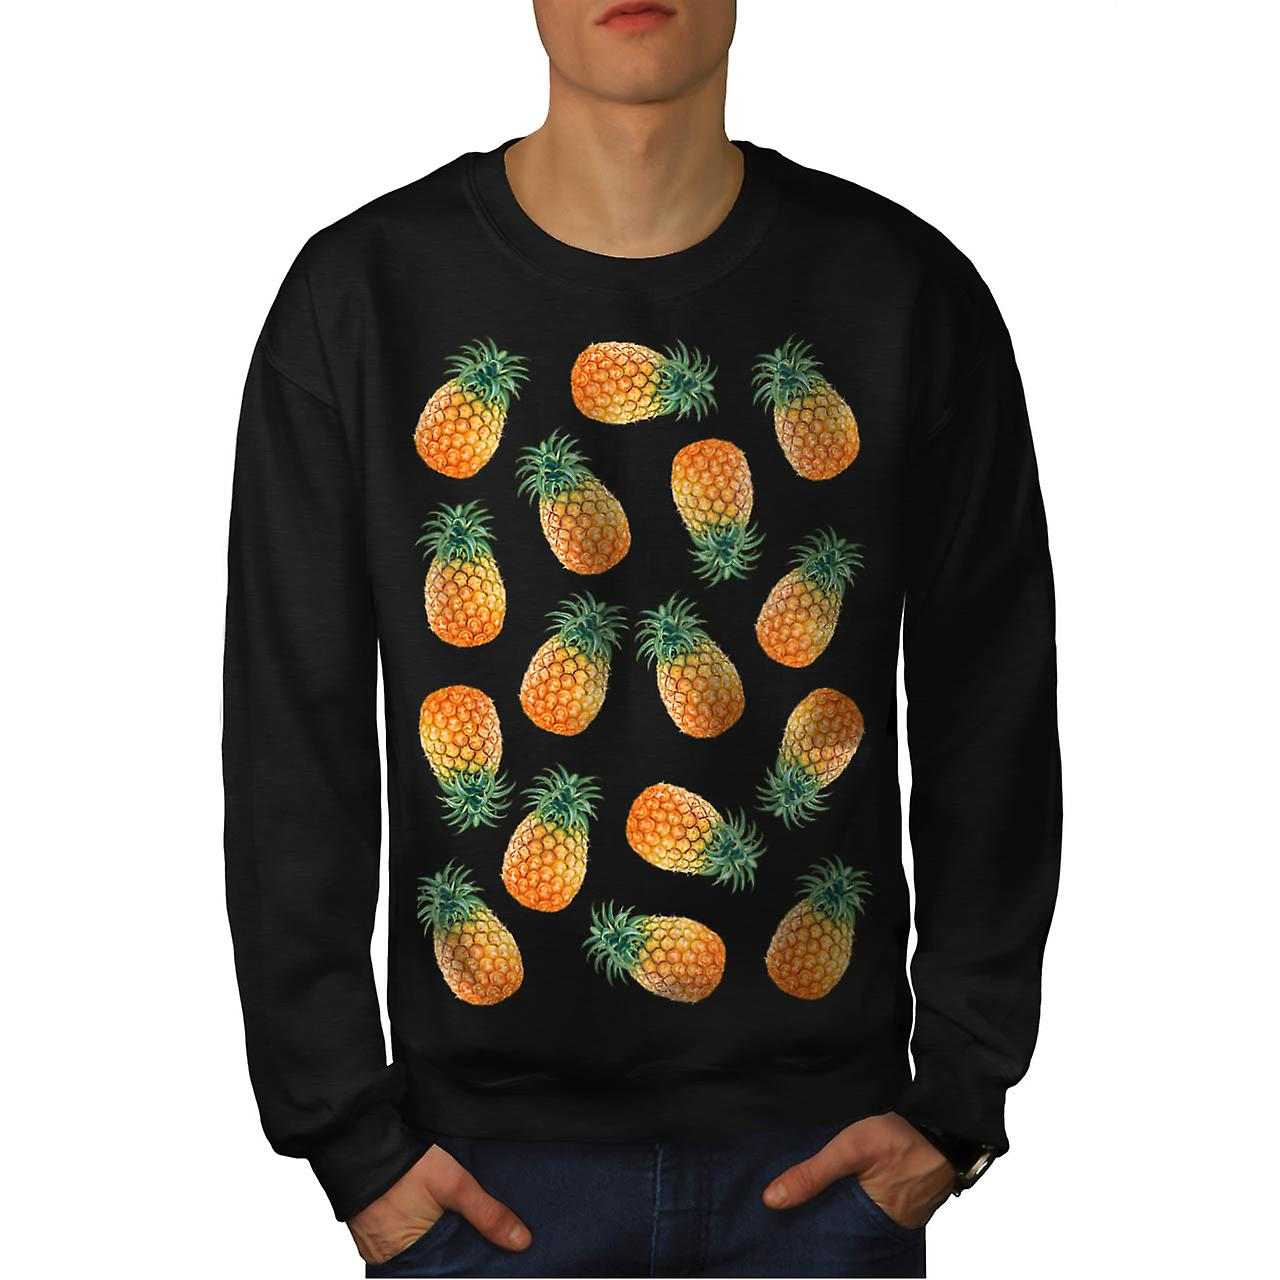 Pineapple Fruit Bowl Summer Fun Men Black Sweatshirt | Wellcoda